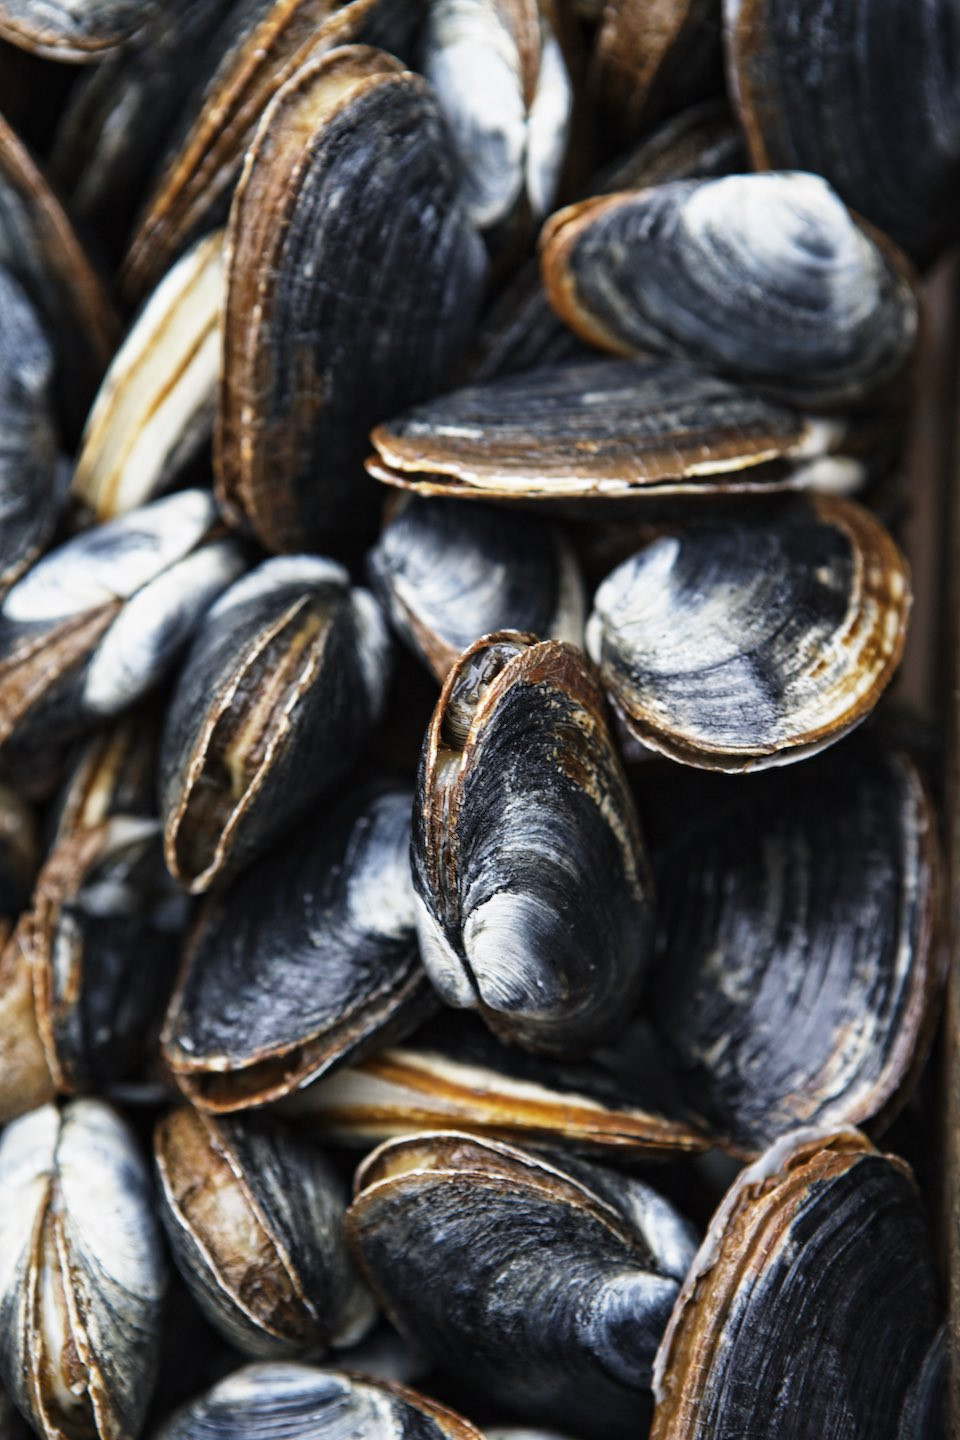 Freshly caught and rinsed harsh-shell clams.